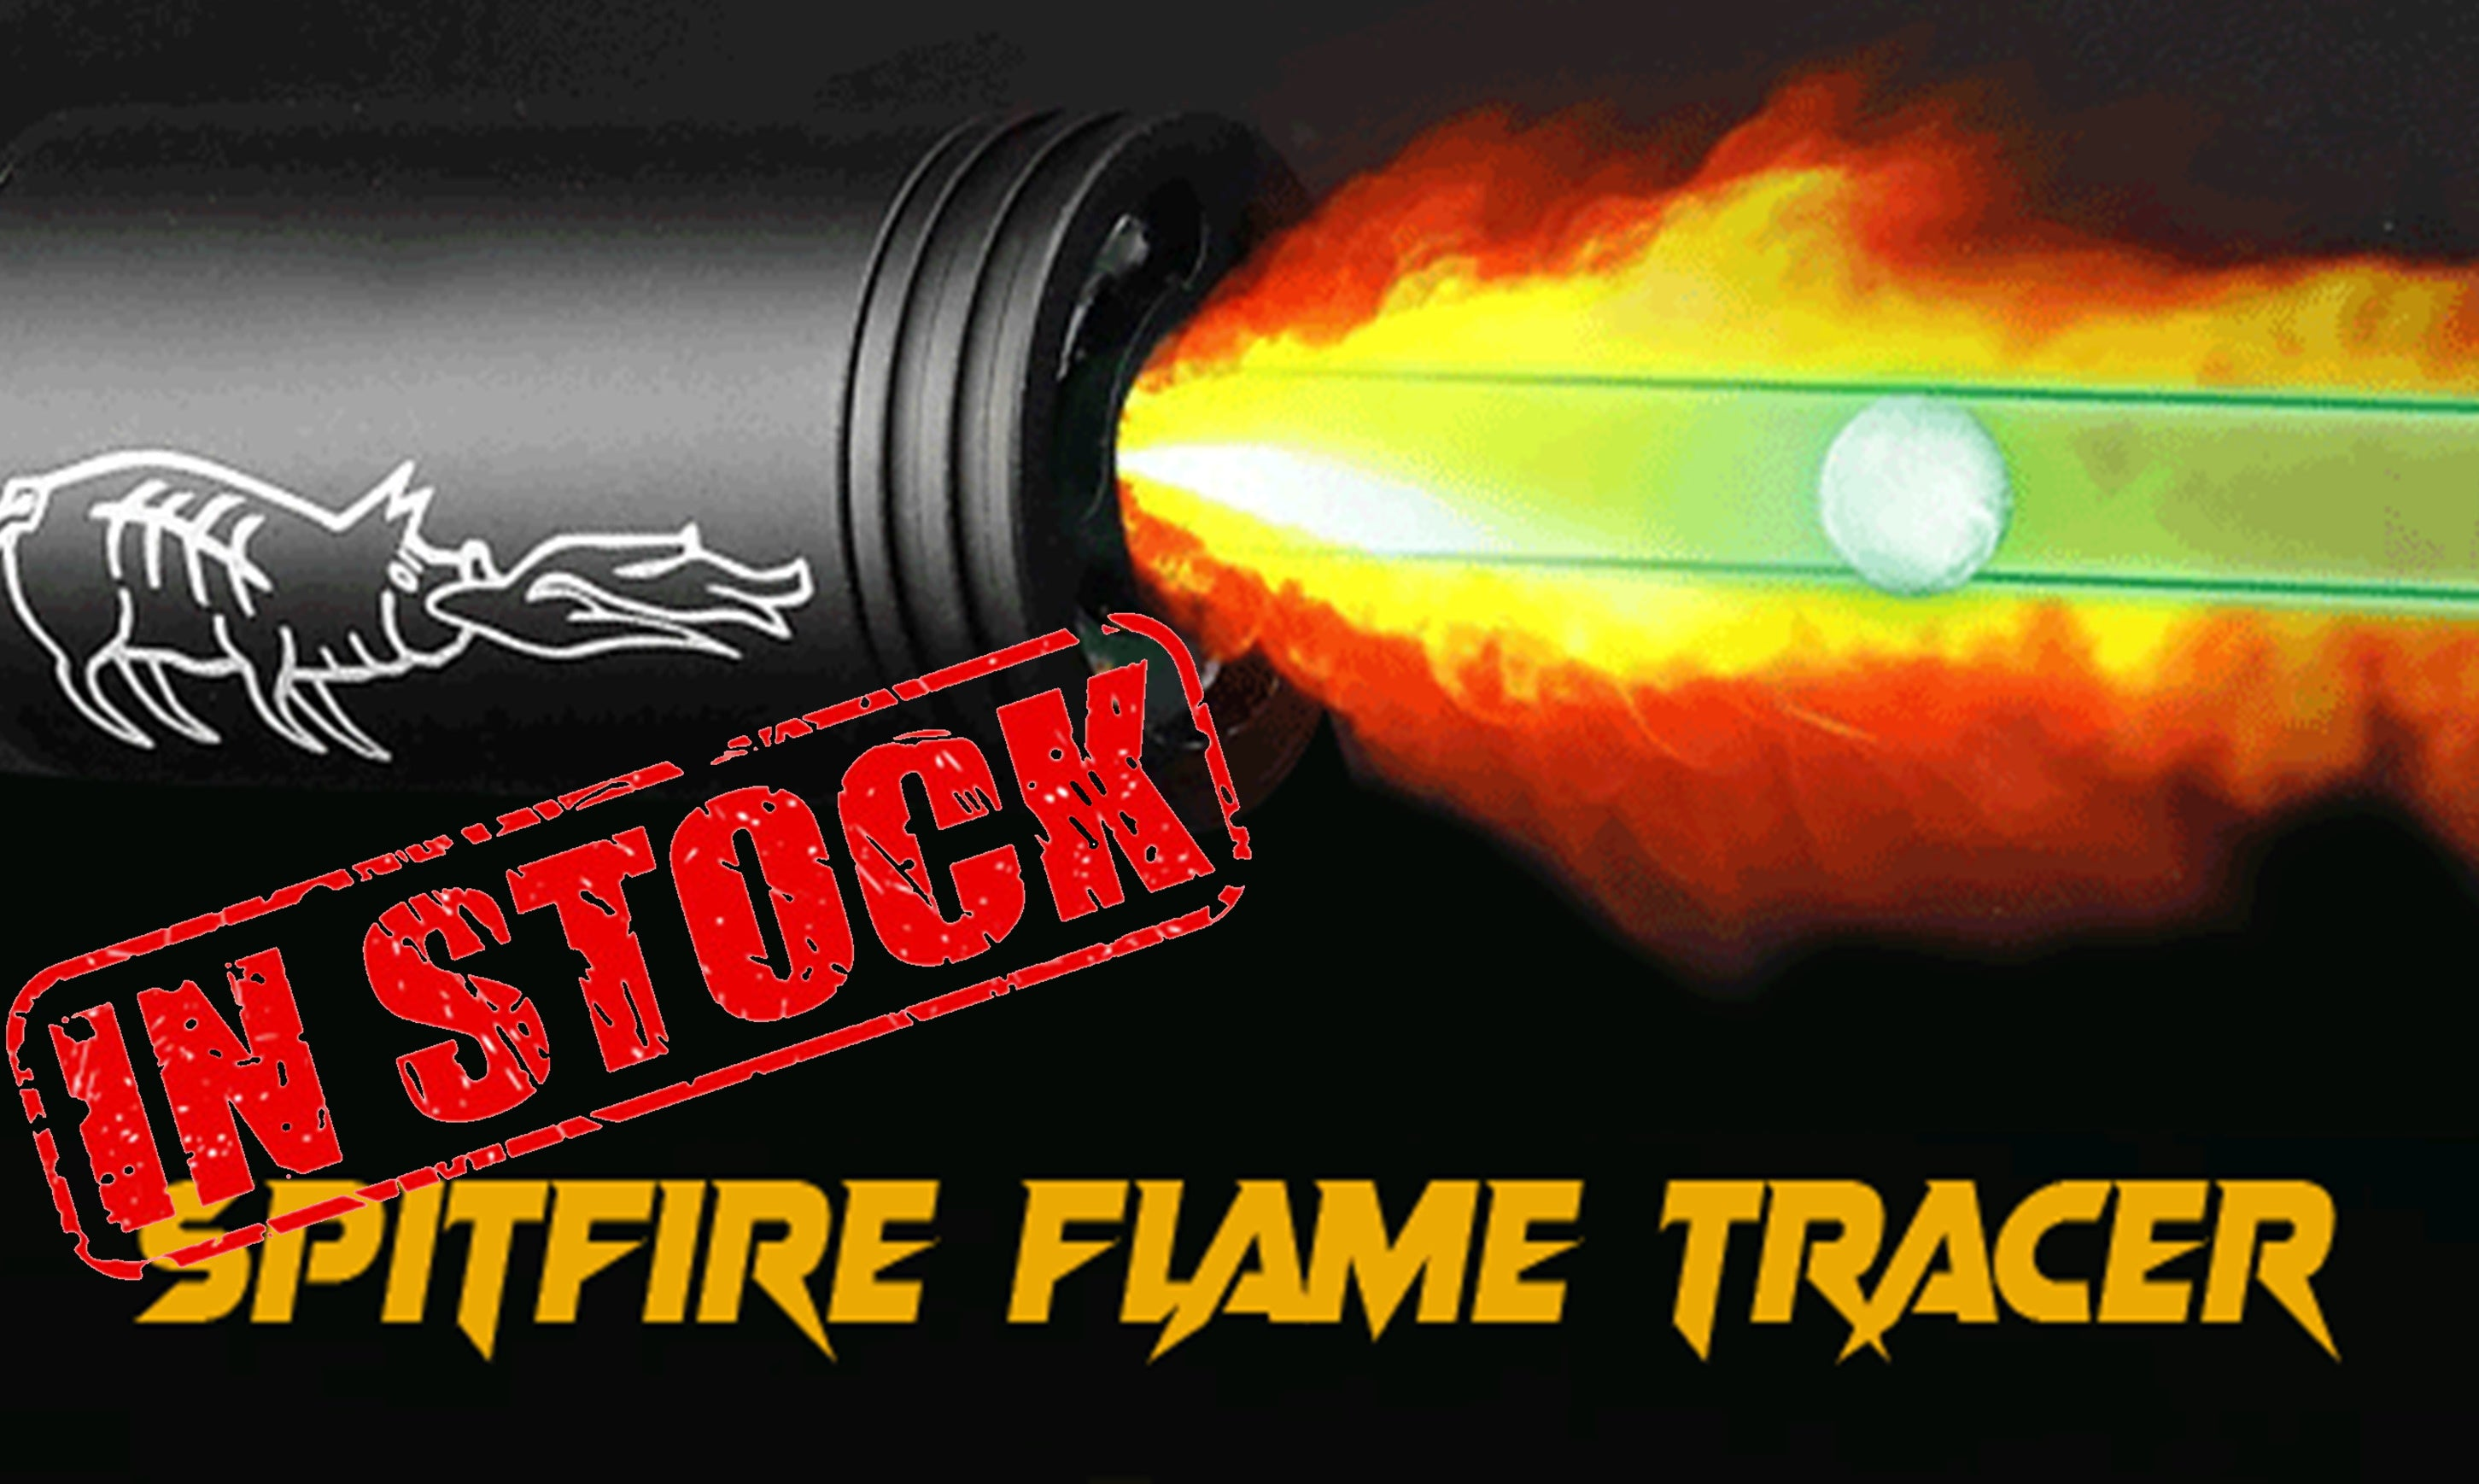 Our Favourite New Accessory - WoSport Spitfire Flame Tracer Review